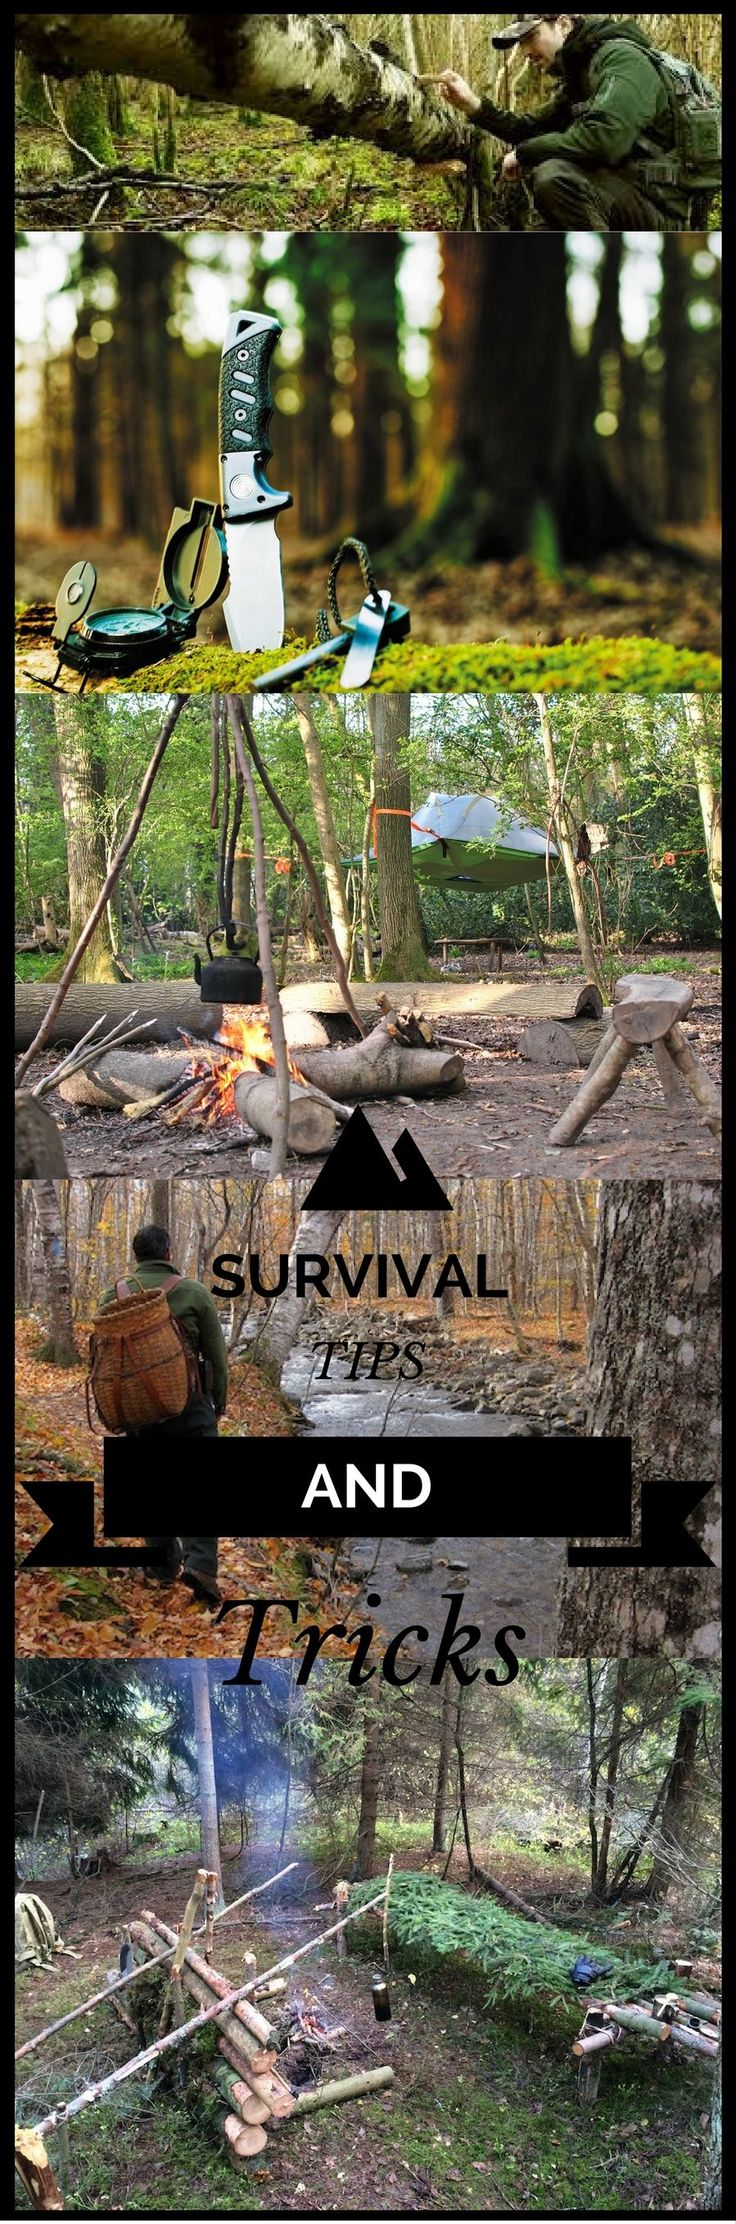 Survival Tips & Techniques: http://vid.staged.com/uG7s